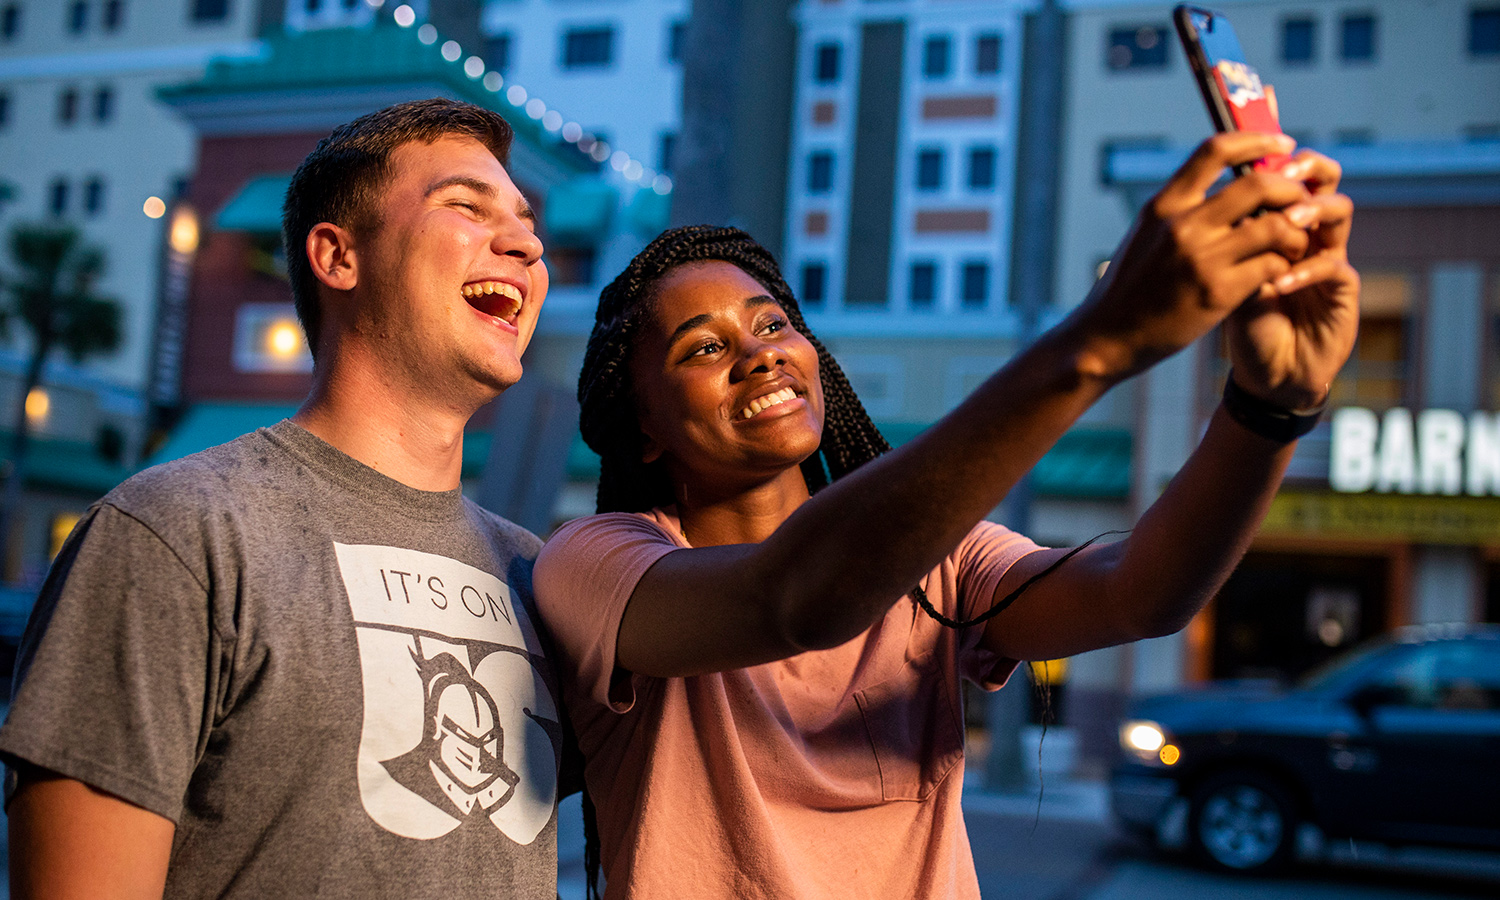 Students taking selfies to post on UCF Social channels.